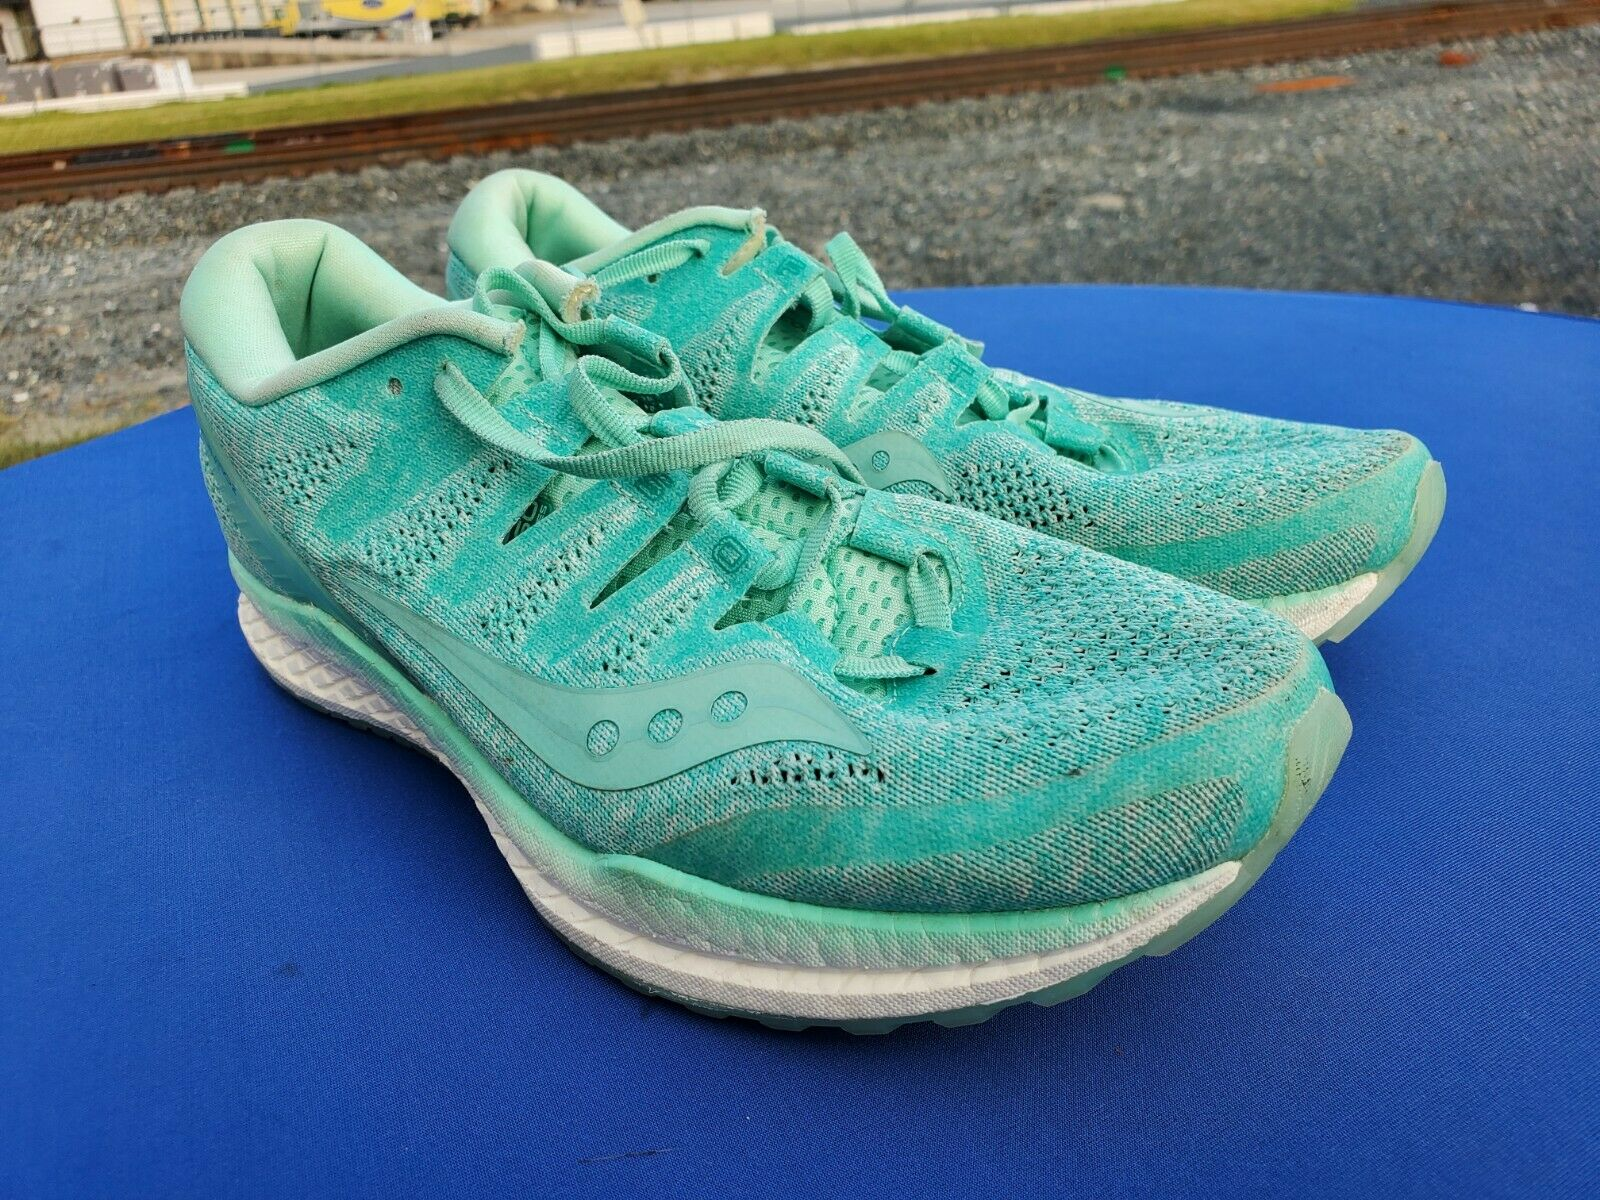 Saucony Women's Freedom ISO 2 Aqua Turquoise Chaussures De Course S10440-35 Taille 9 m